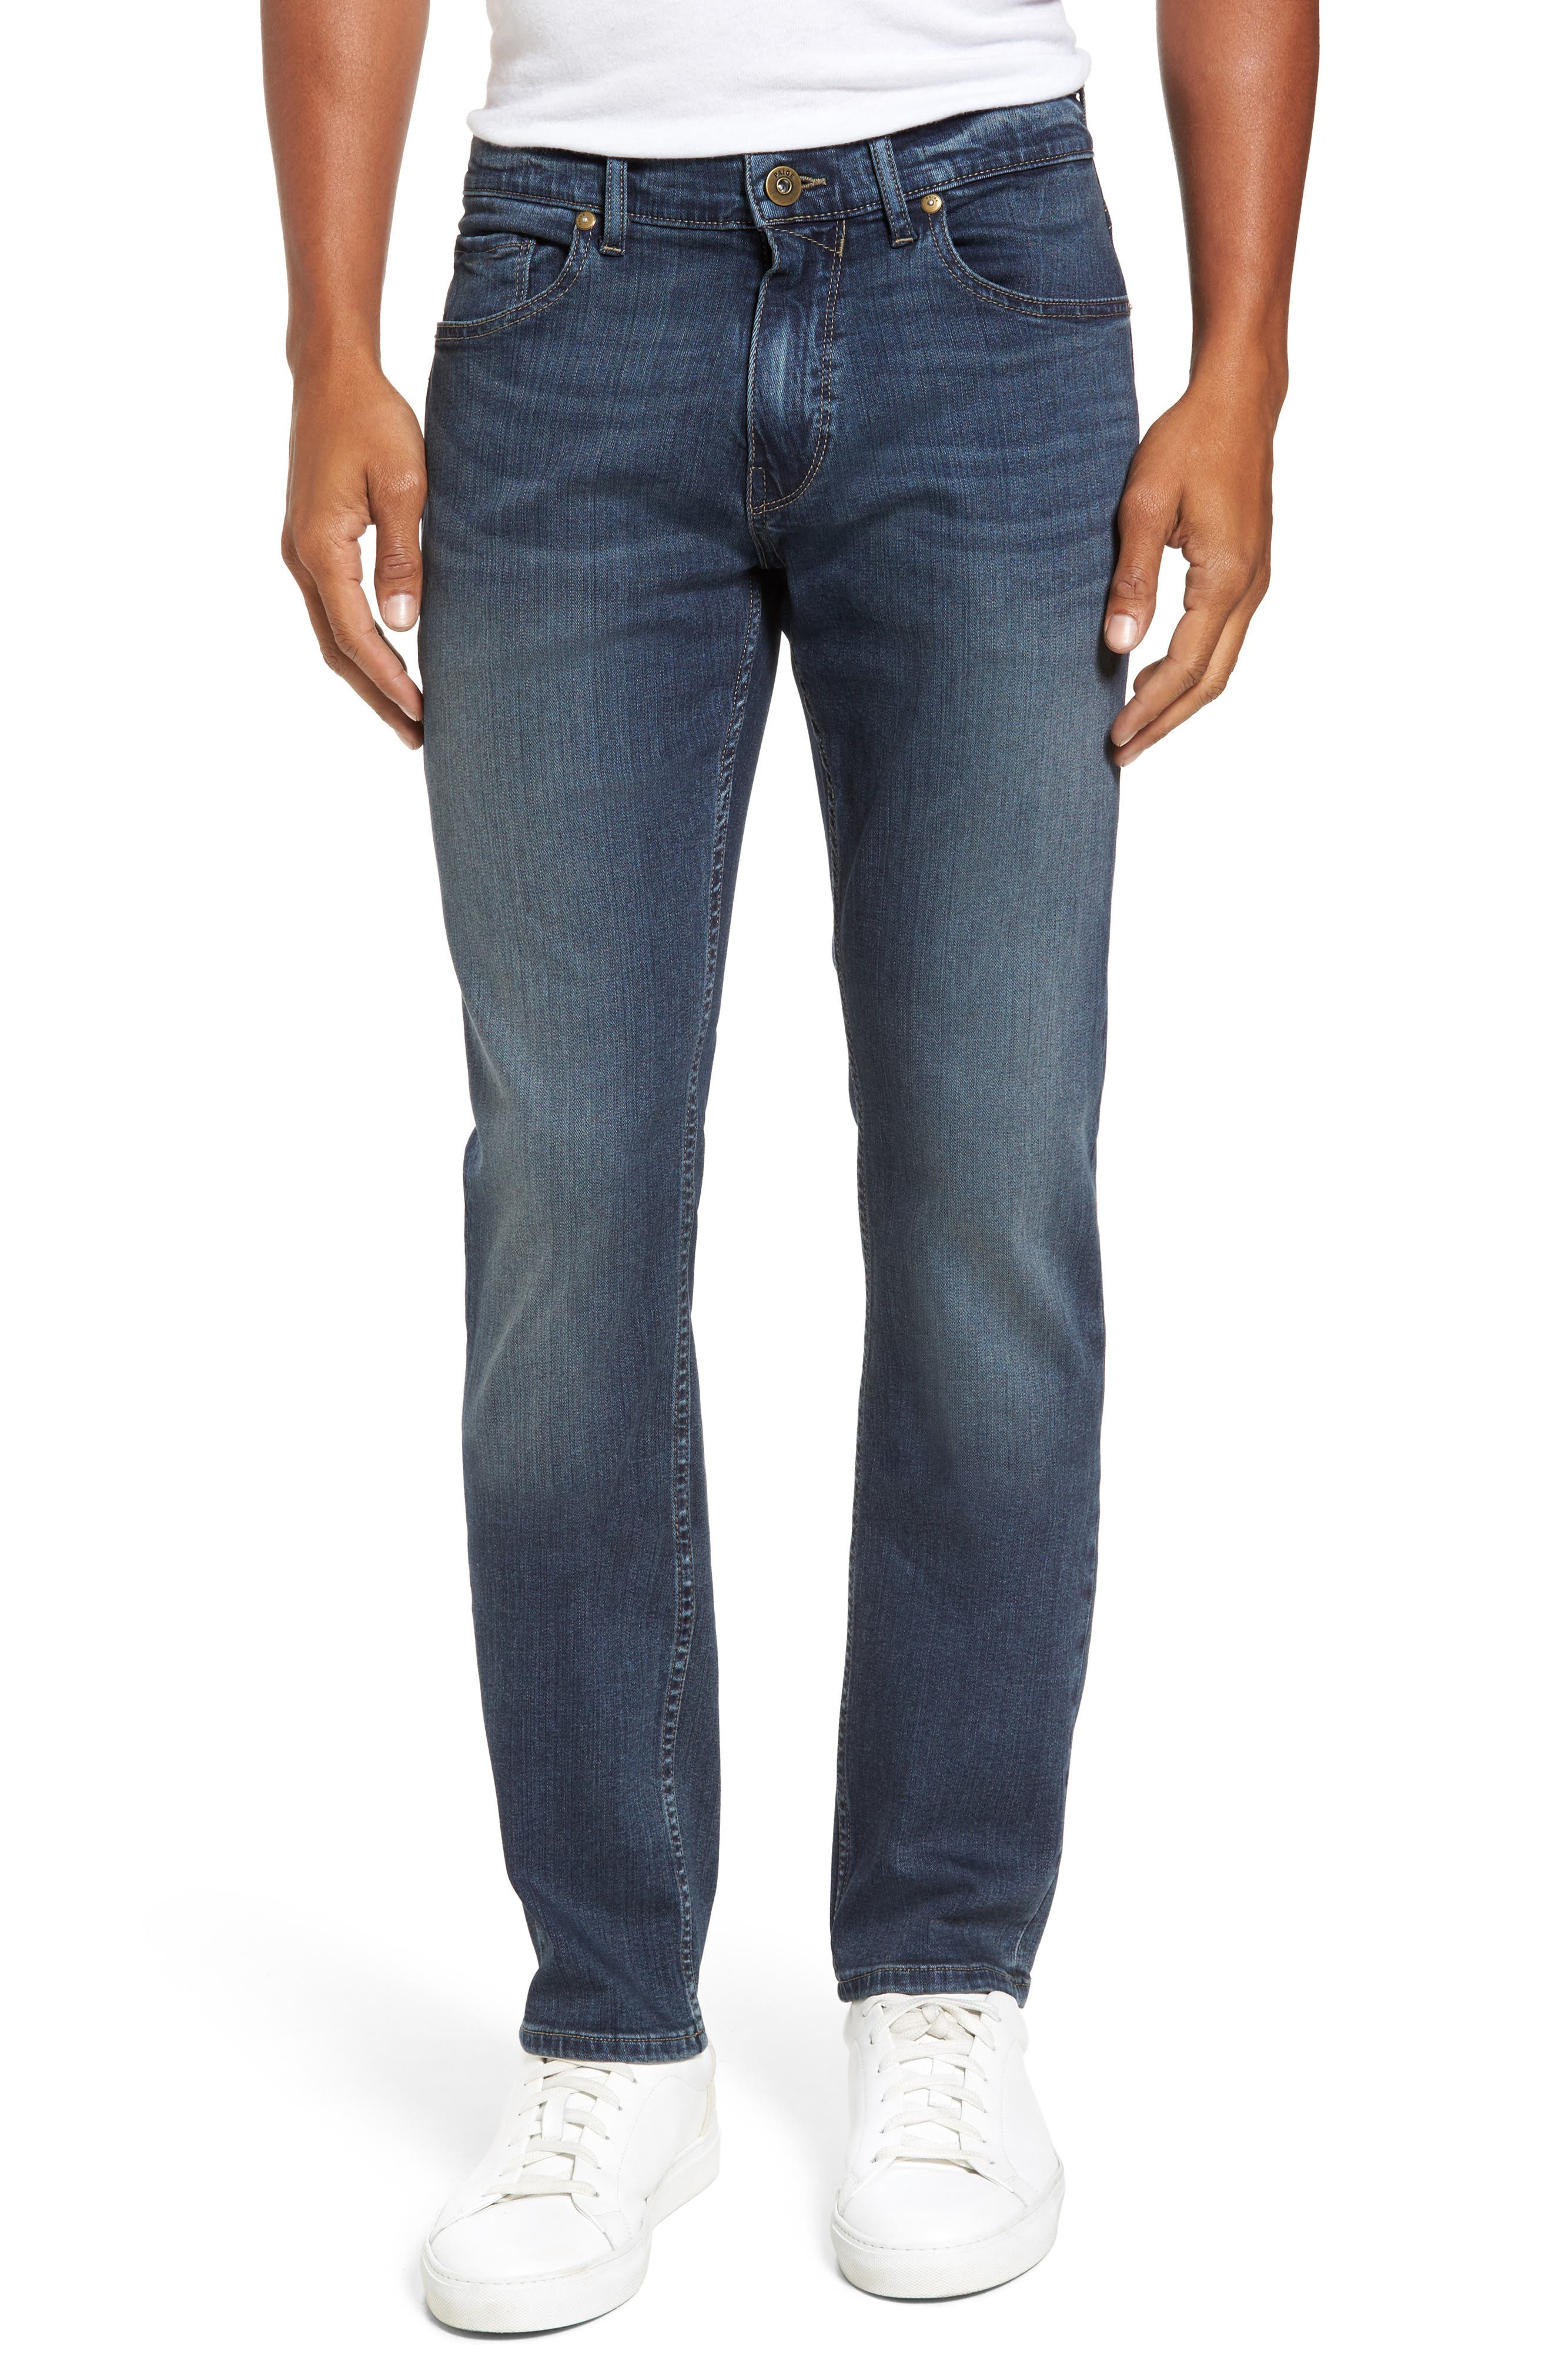 Transcend - Federal Slim Straight Leg Jeans,                             Main thumbnail 1, color,                             400